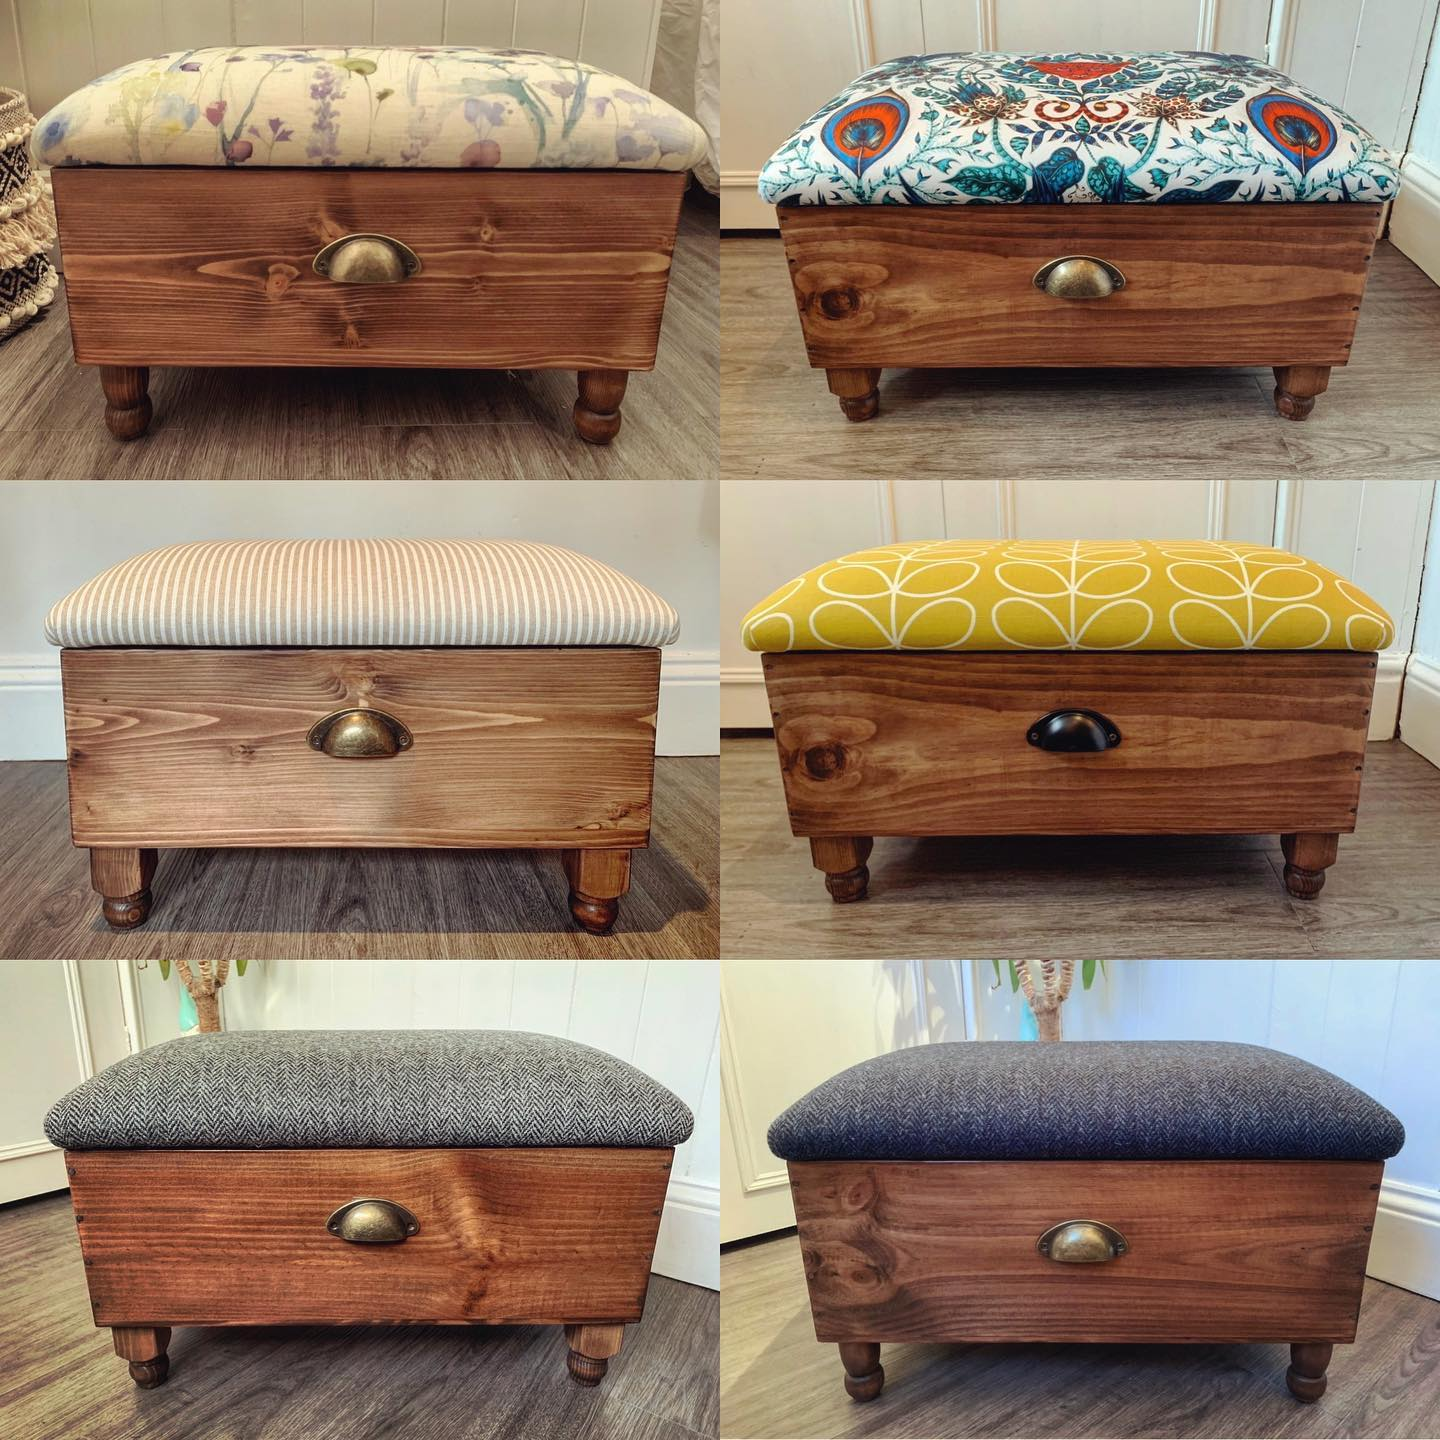 We've been working on some lovely ottomans over the past few weeks. It's such a pleasure creating bespoke pieces for people's homes! ...#handcrafted #homedecor #storage #upholstery #gingerandtweed #bespoke #home #unique #livingroomdecor #beautifulfabric #bedroomstyling #interiorstyles #corordinatefabric